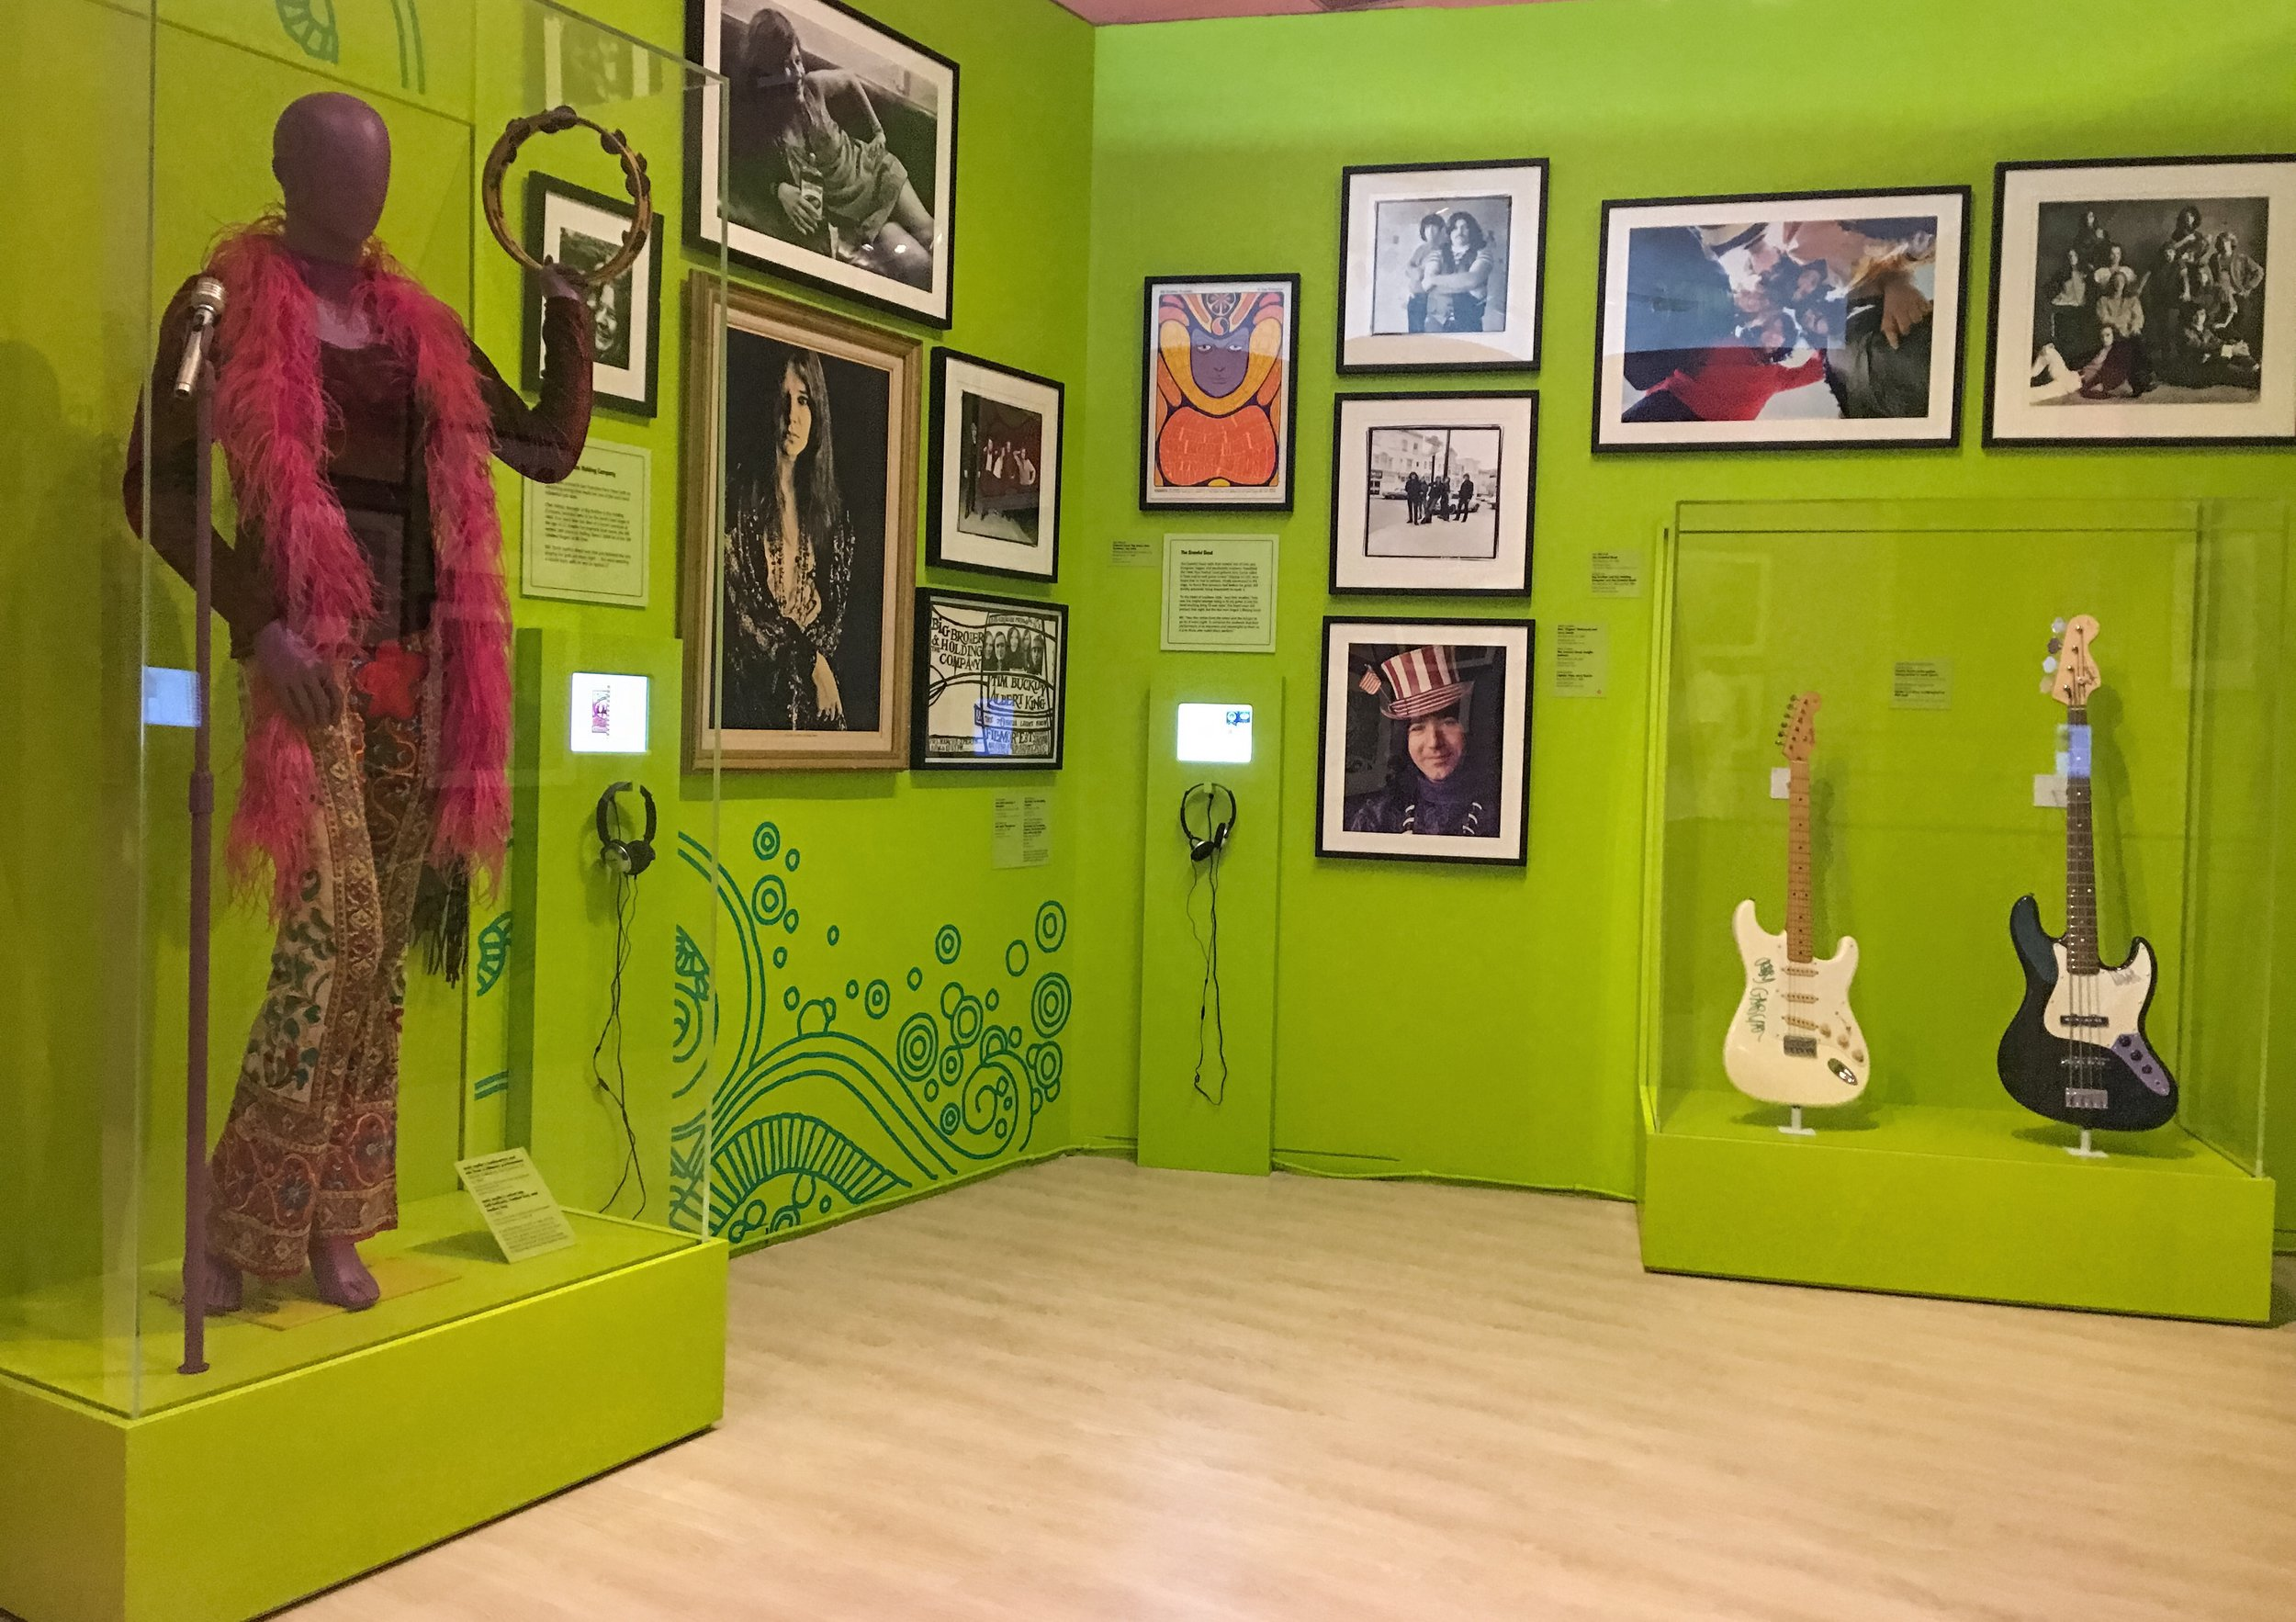 Janis Joplin stage outfit, mic stand, and tambourine across from a Jerry Garcia guitar and Phil Leah bass, celebrating Graham's relationship to two of music's most iconic acts.